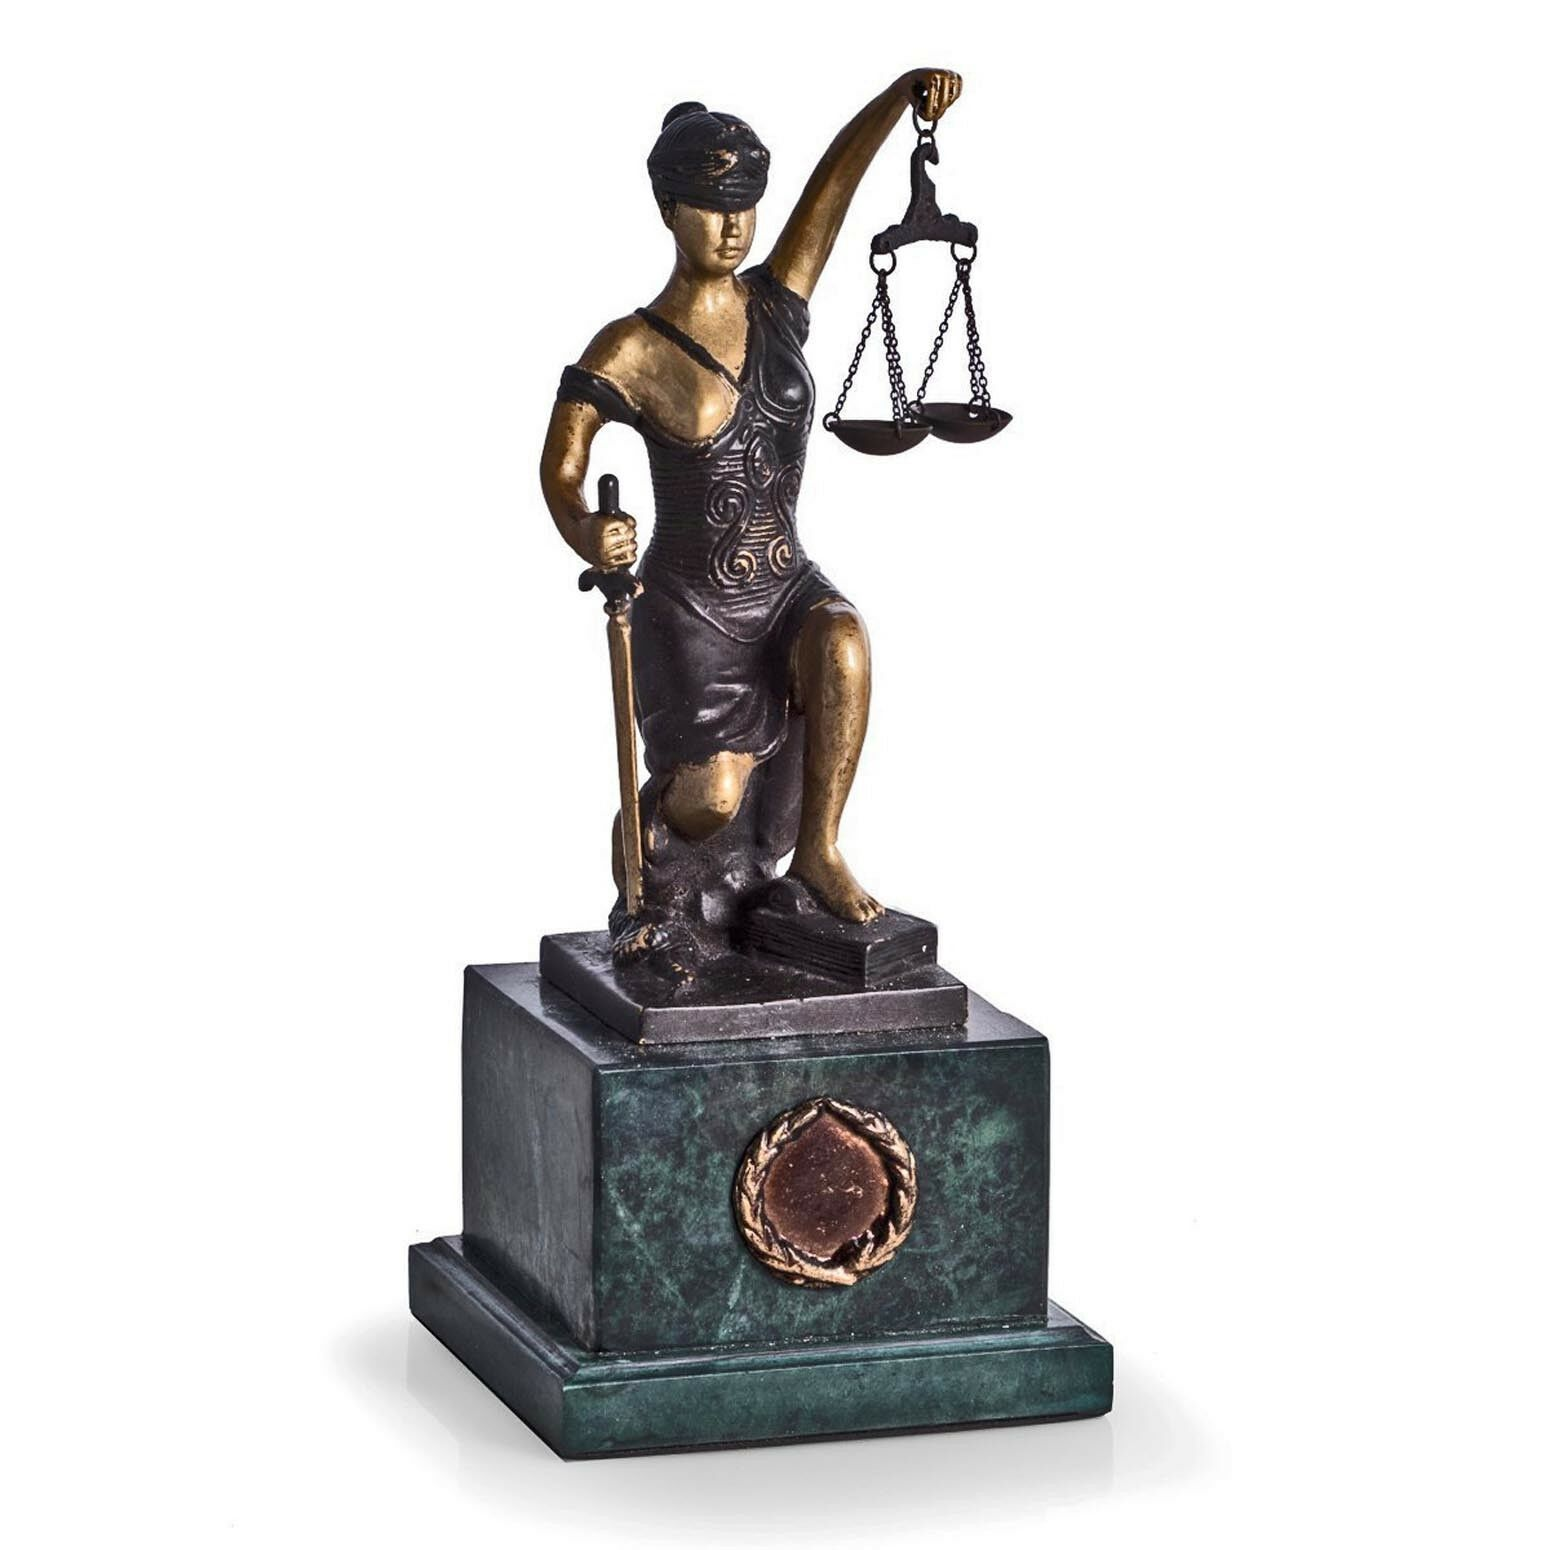 FIGURINES - KNEELING LADY JUSTICE SCULPTURE - MARBLE BASE - LAWYERS & LEGAL